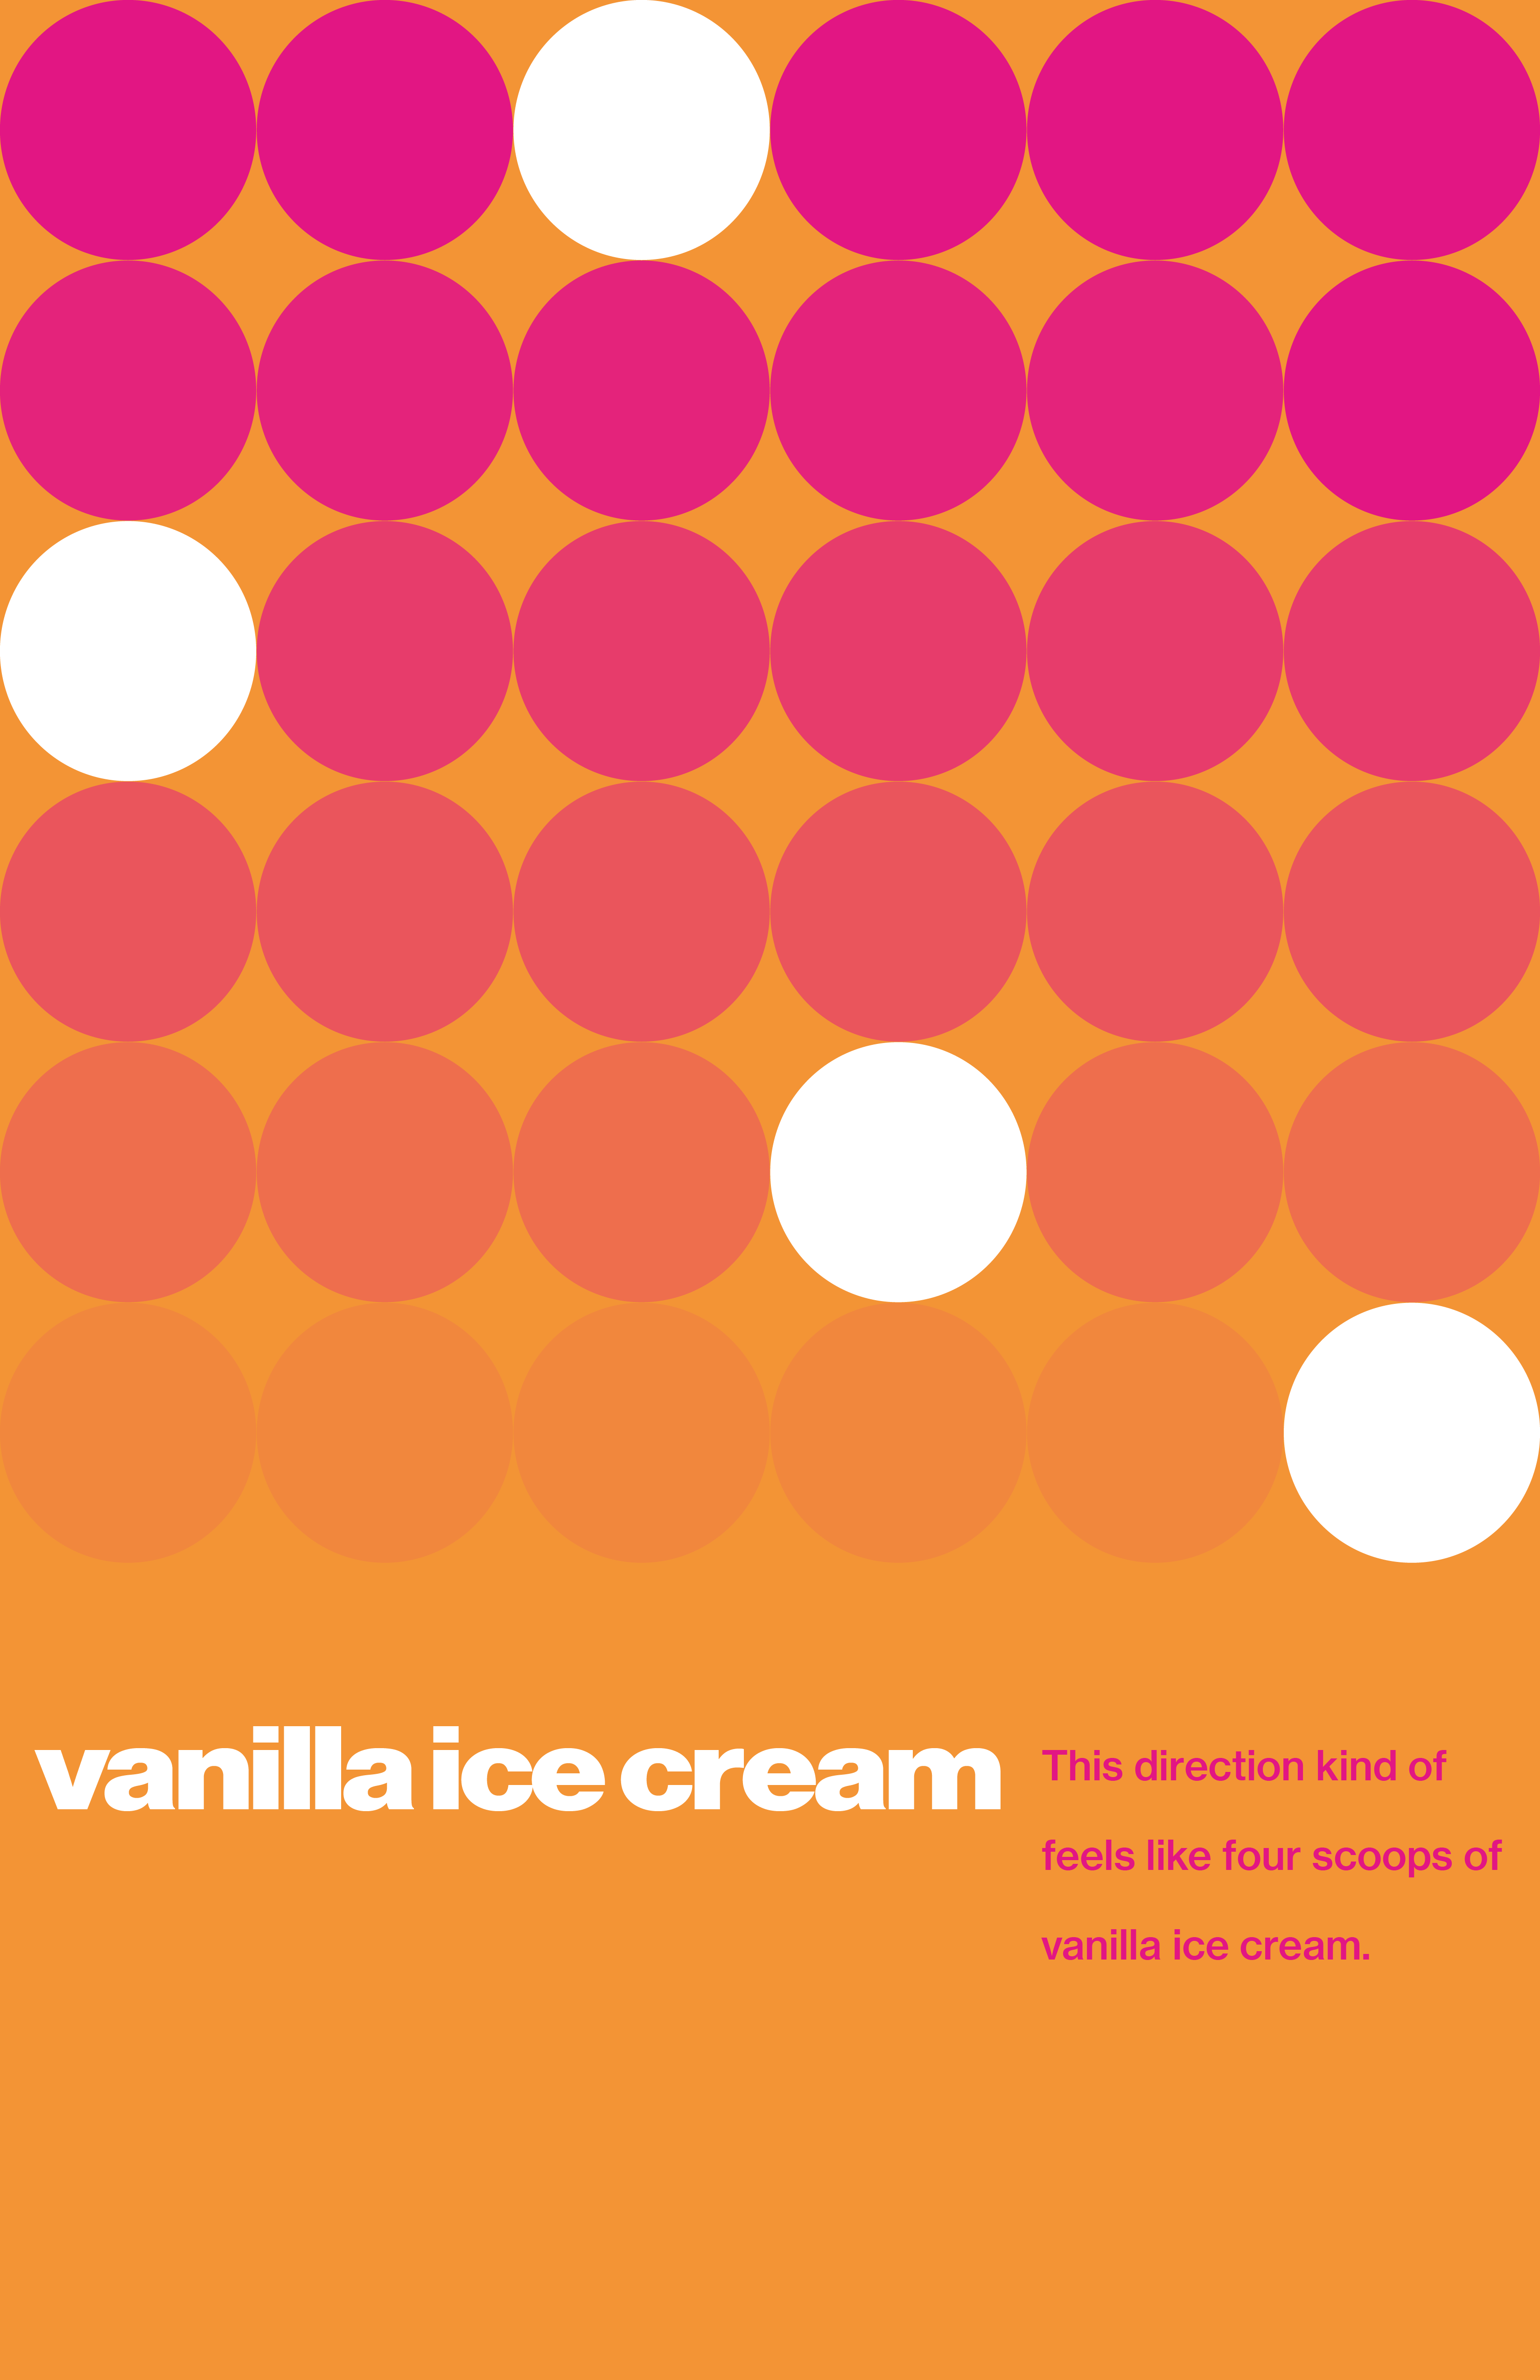 """Orange poster with a grid of pink and white dots displaying the quote, """"This direction kind of feel like four scoops of vanilla ice cream."""""""